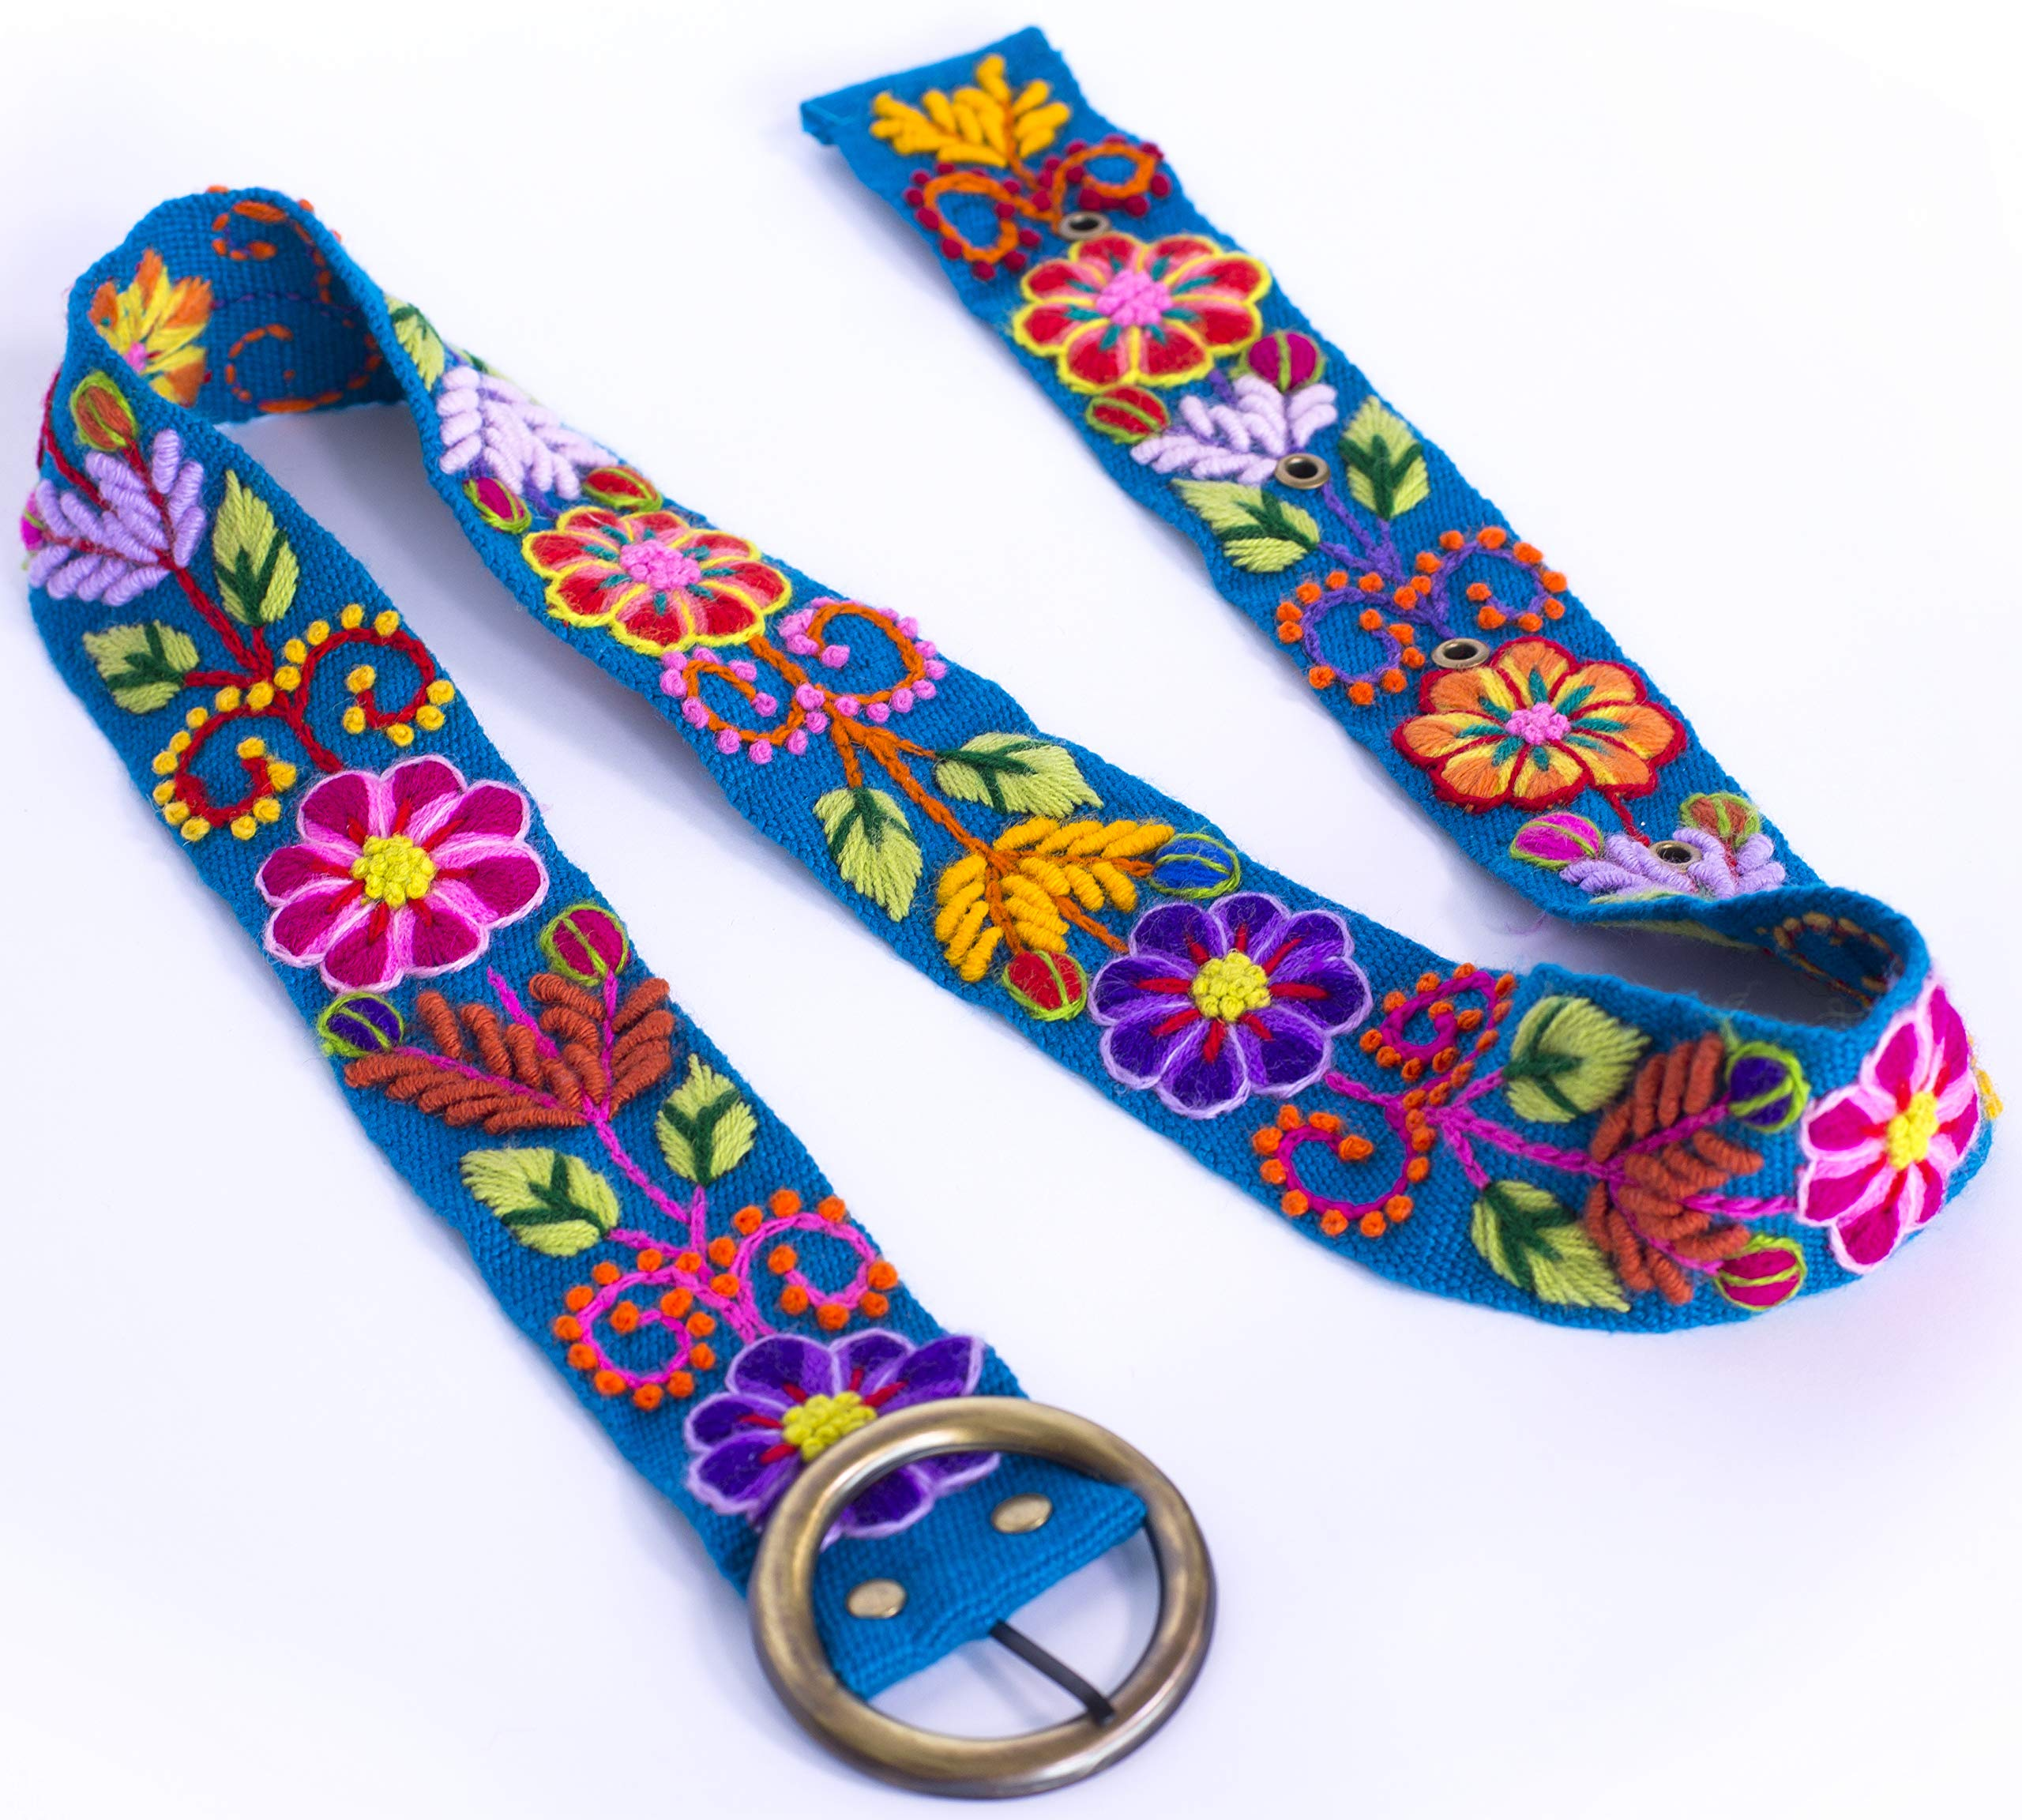 RAYMIS Womens Alpaca Wool Handmade Belt with Colorful Embroidered Flowers (Turquoise)